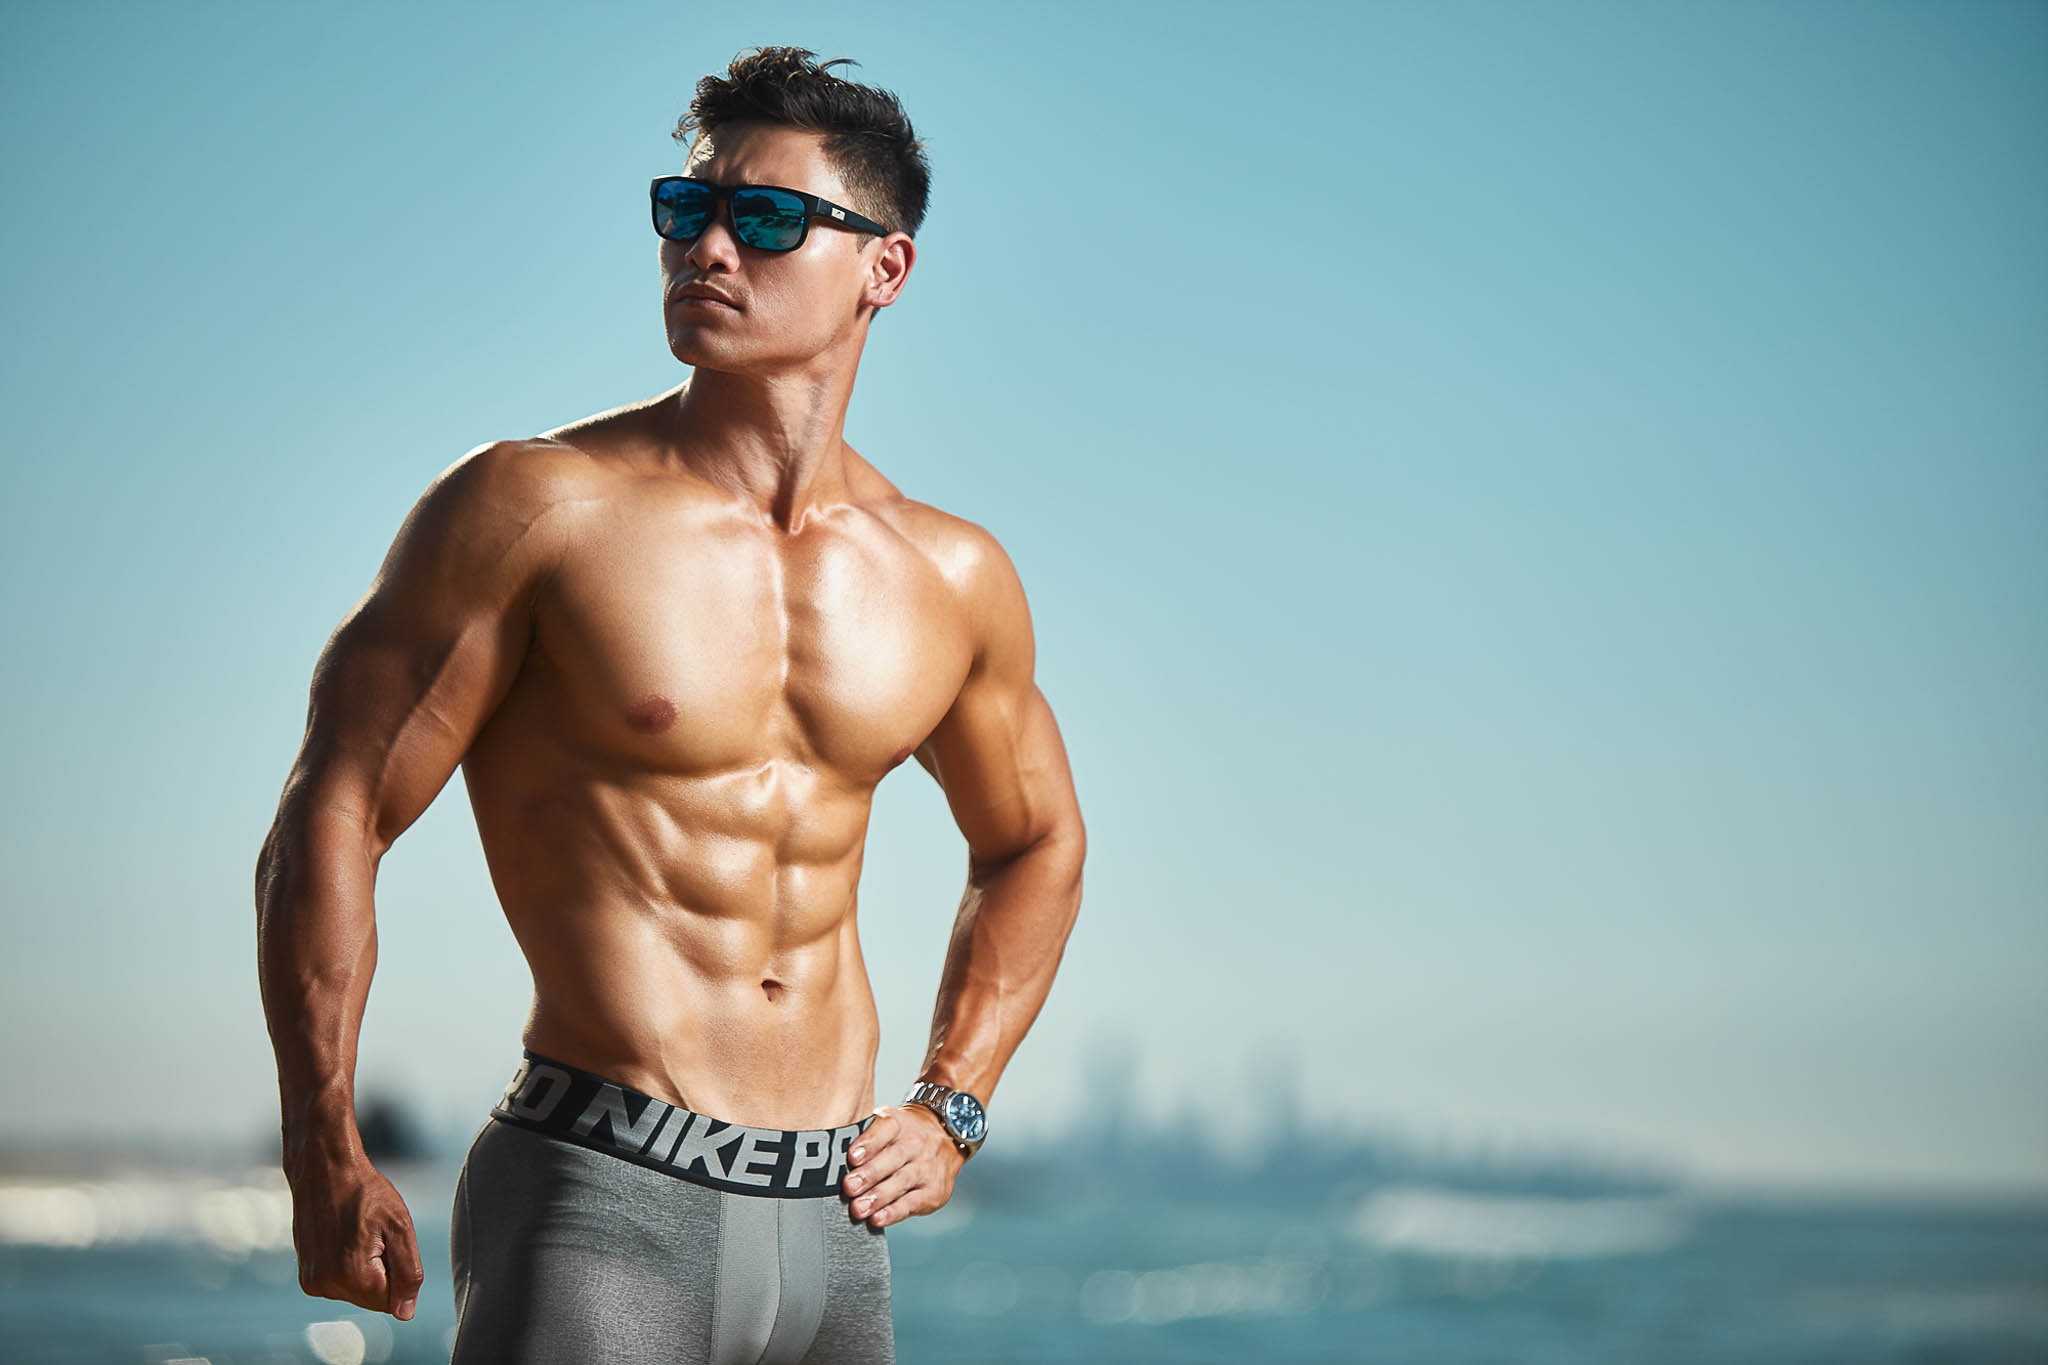 Andrew Mc at the beach flexing his toned physique wearing sunglasses